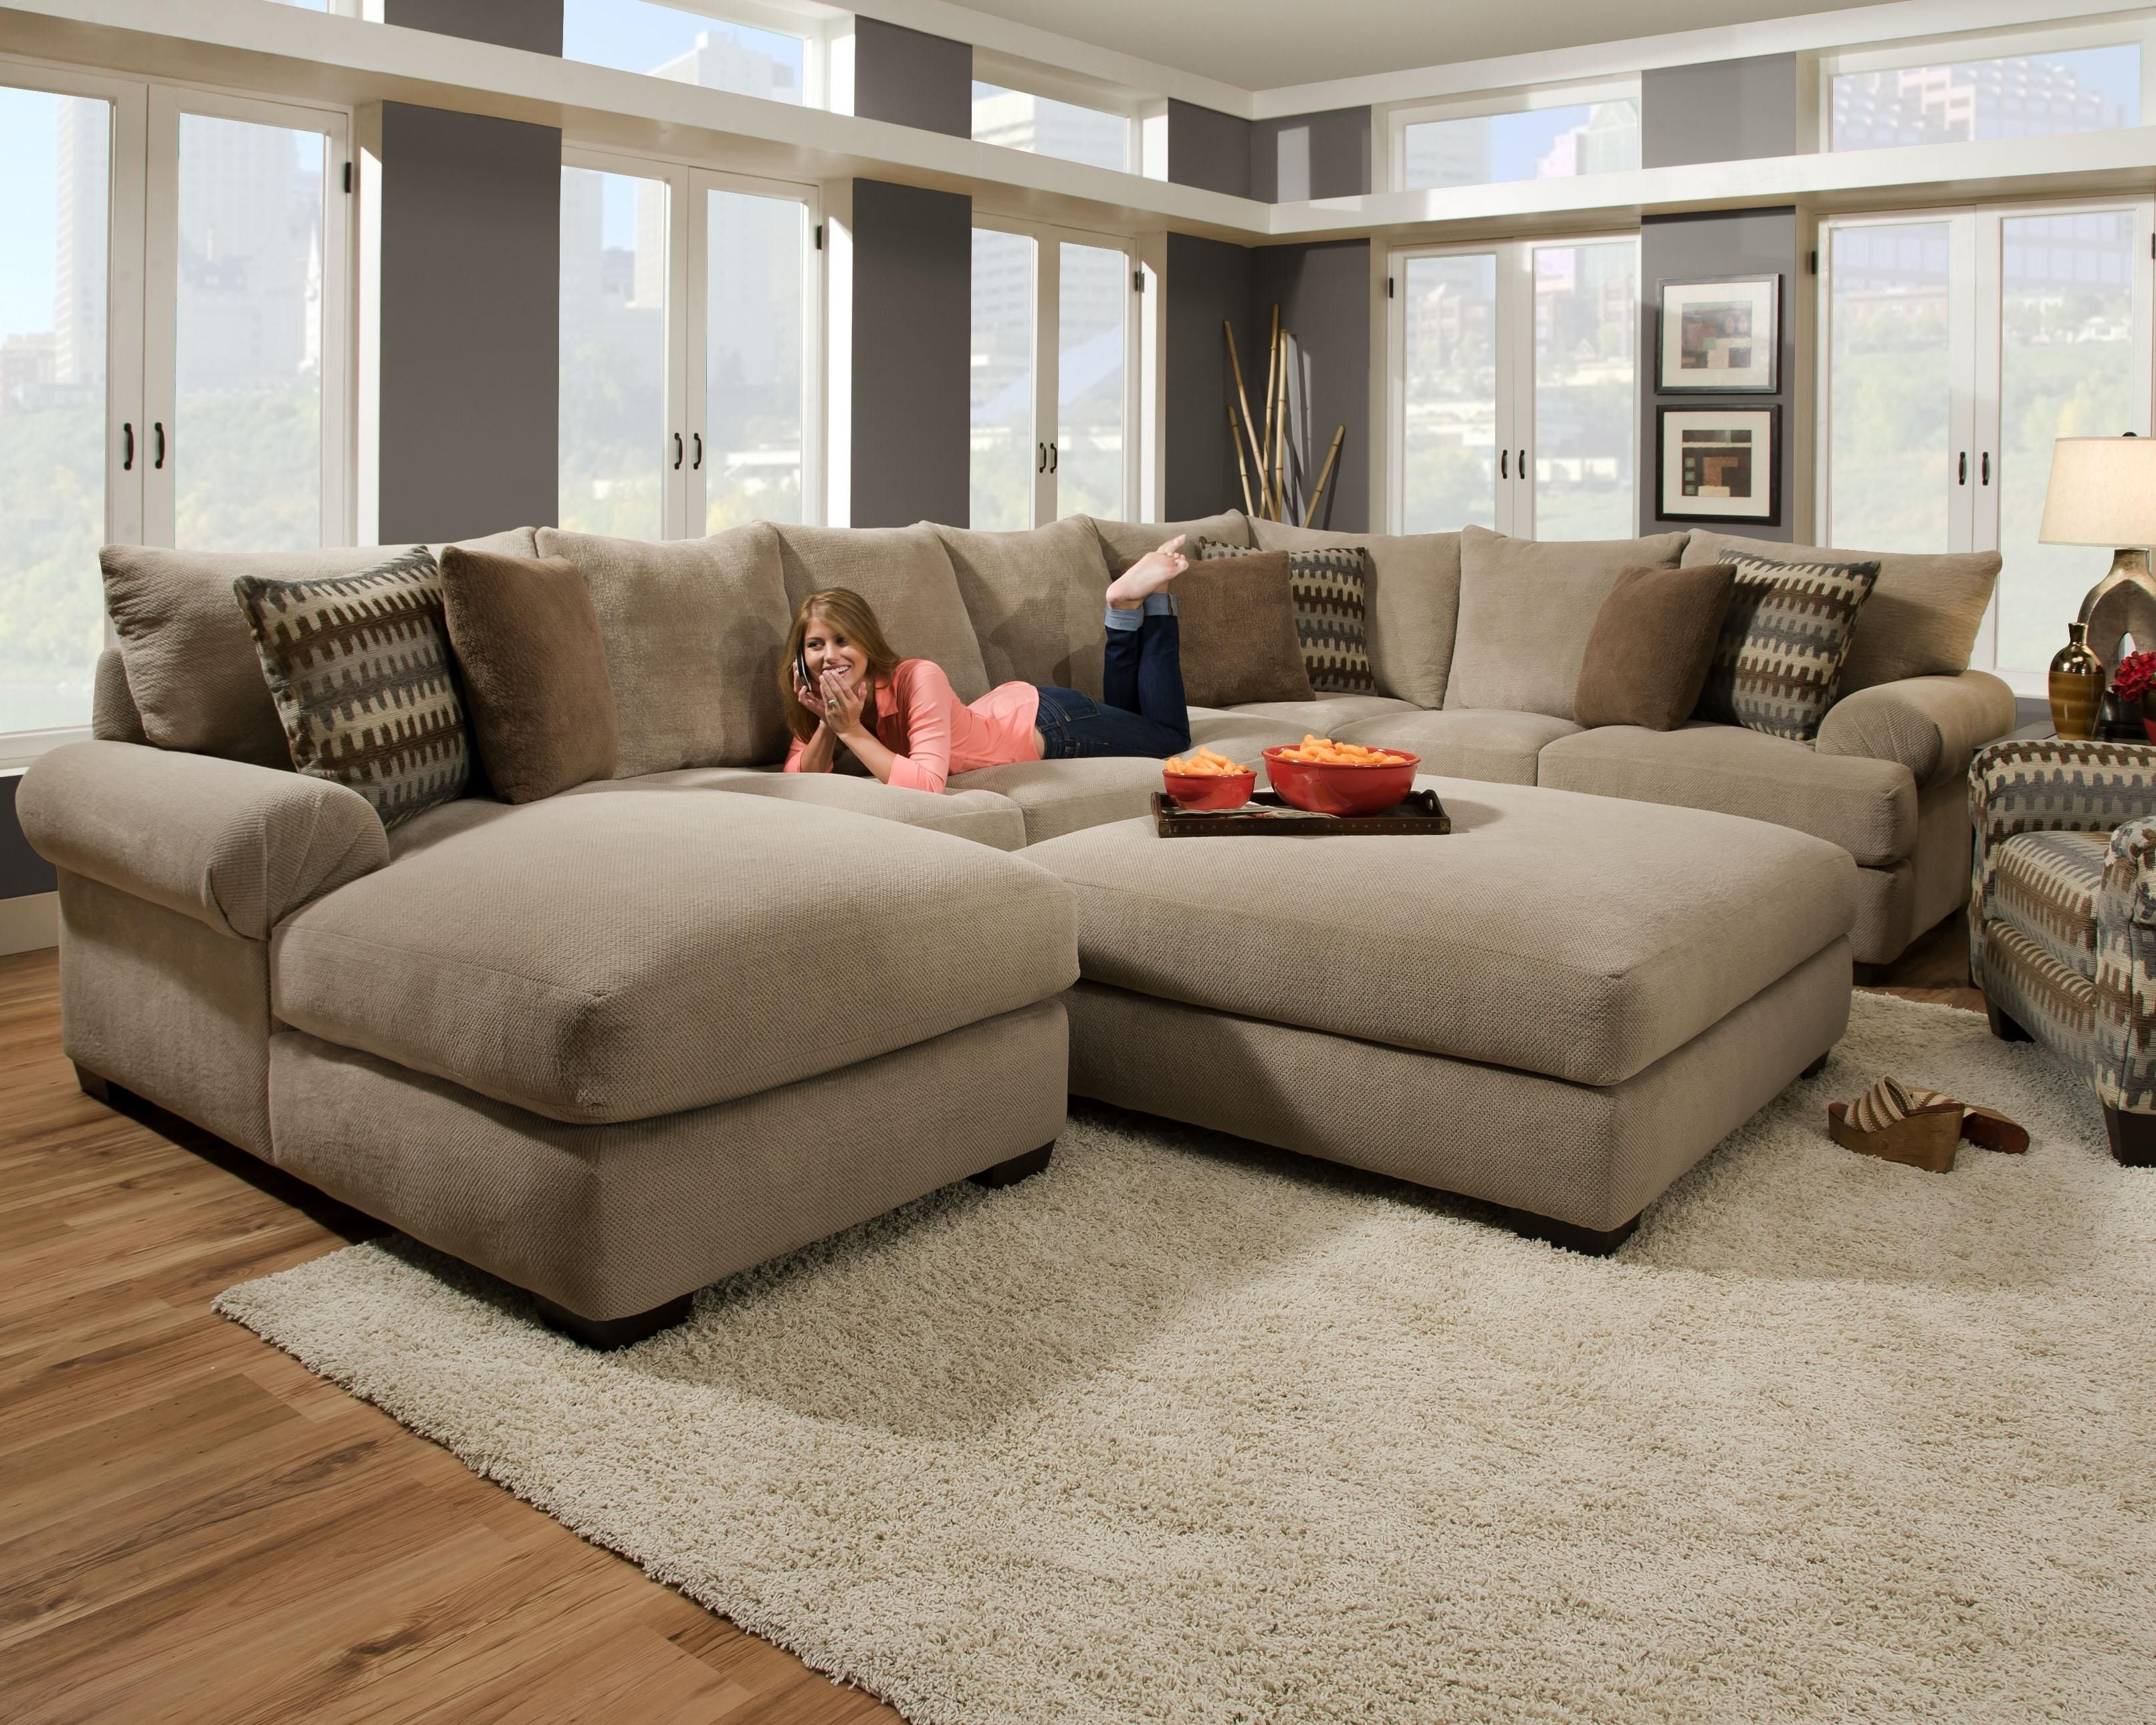 Well Liked Sectional Couches With Large Ottoman Intended For Furniture Design Idea For Living Room And Oversized U Shaped (View 3 of 20)